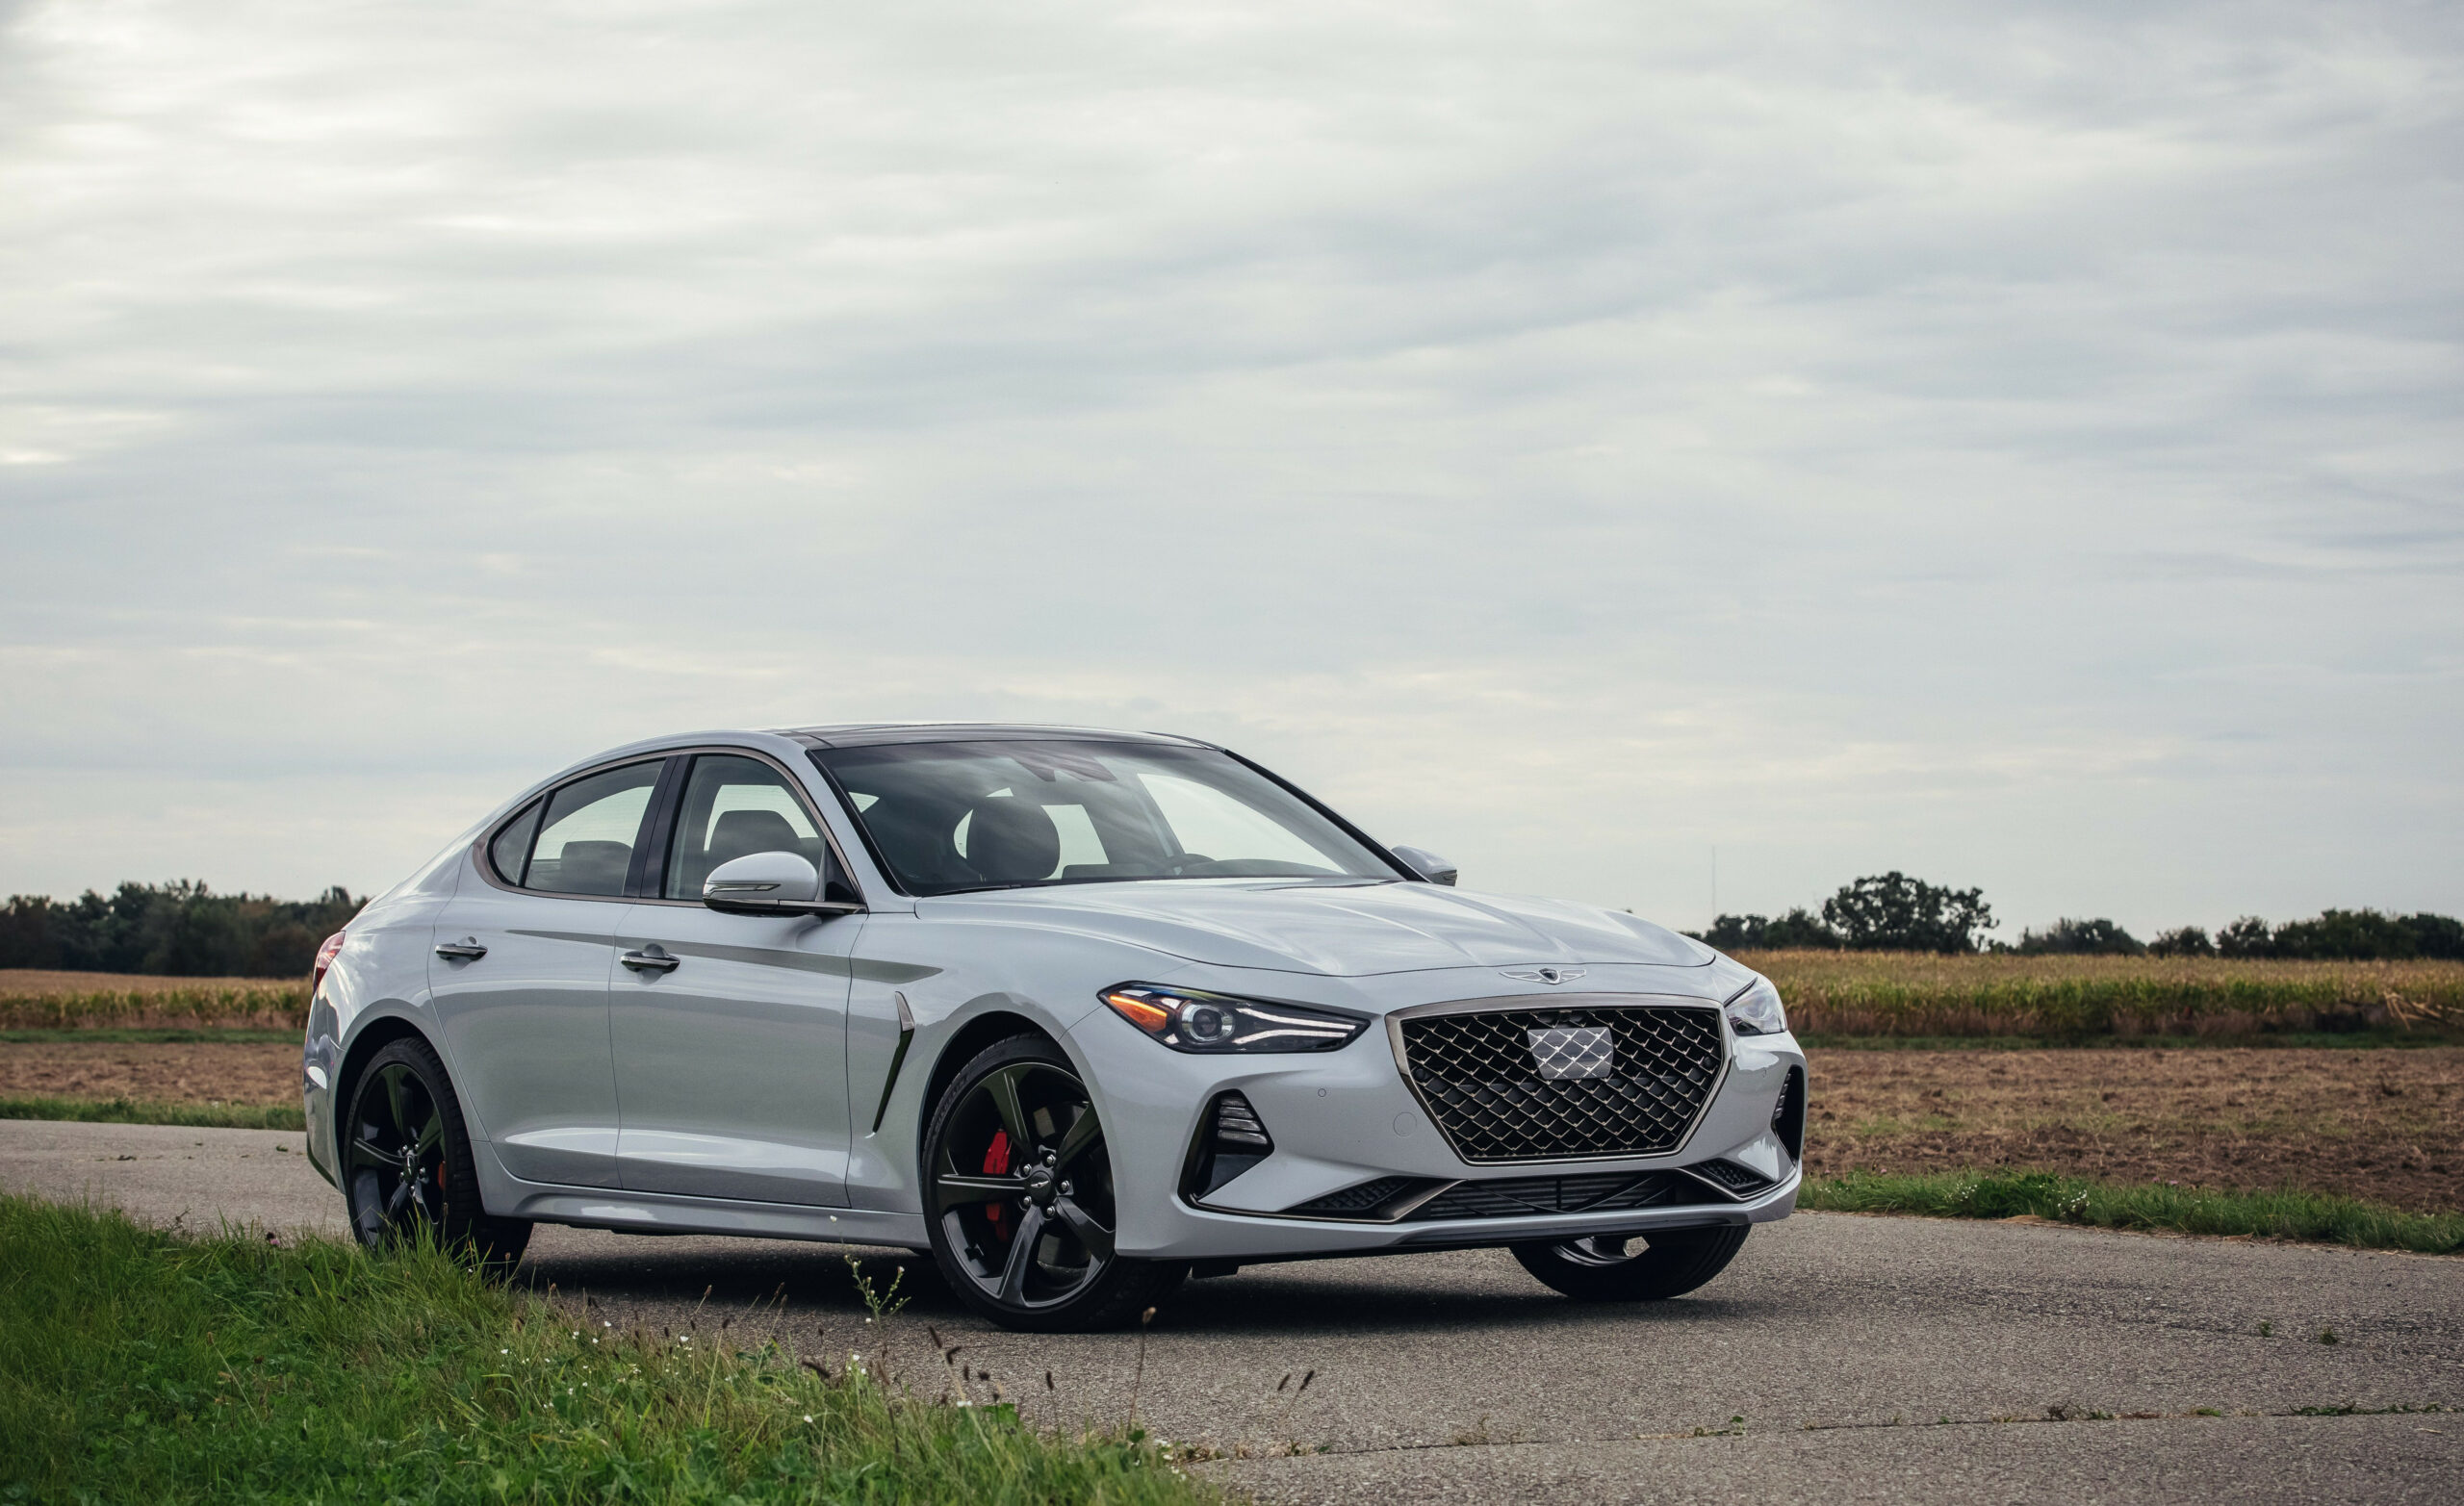 7 Genesis G7 Review, Pricing, and Specs